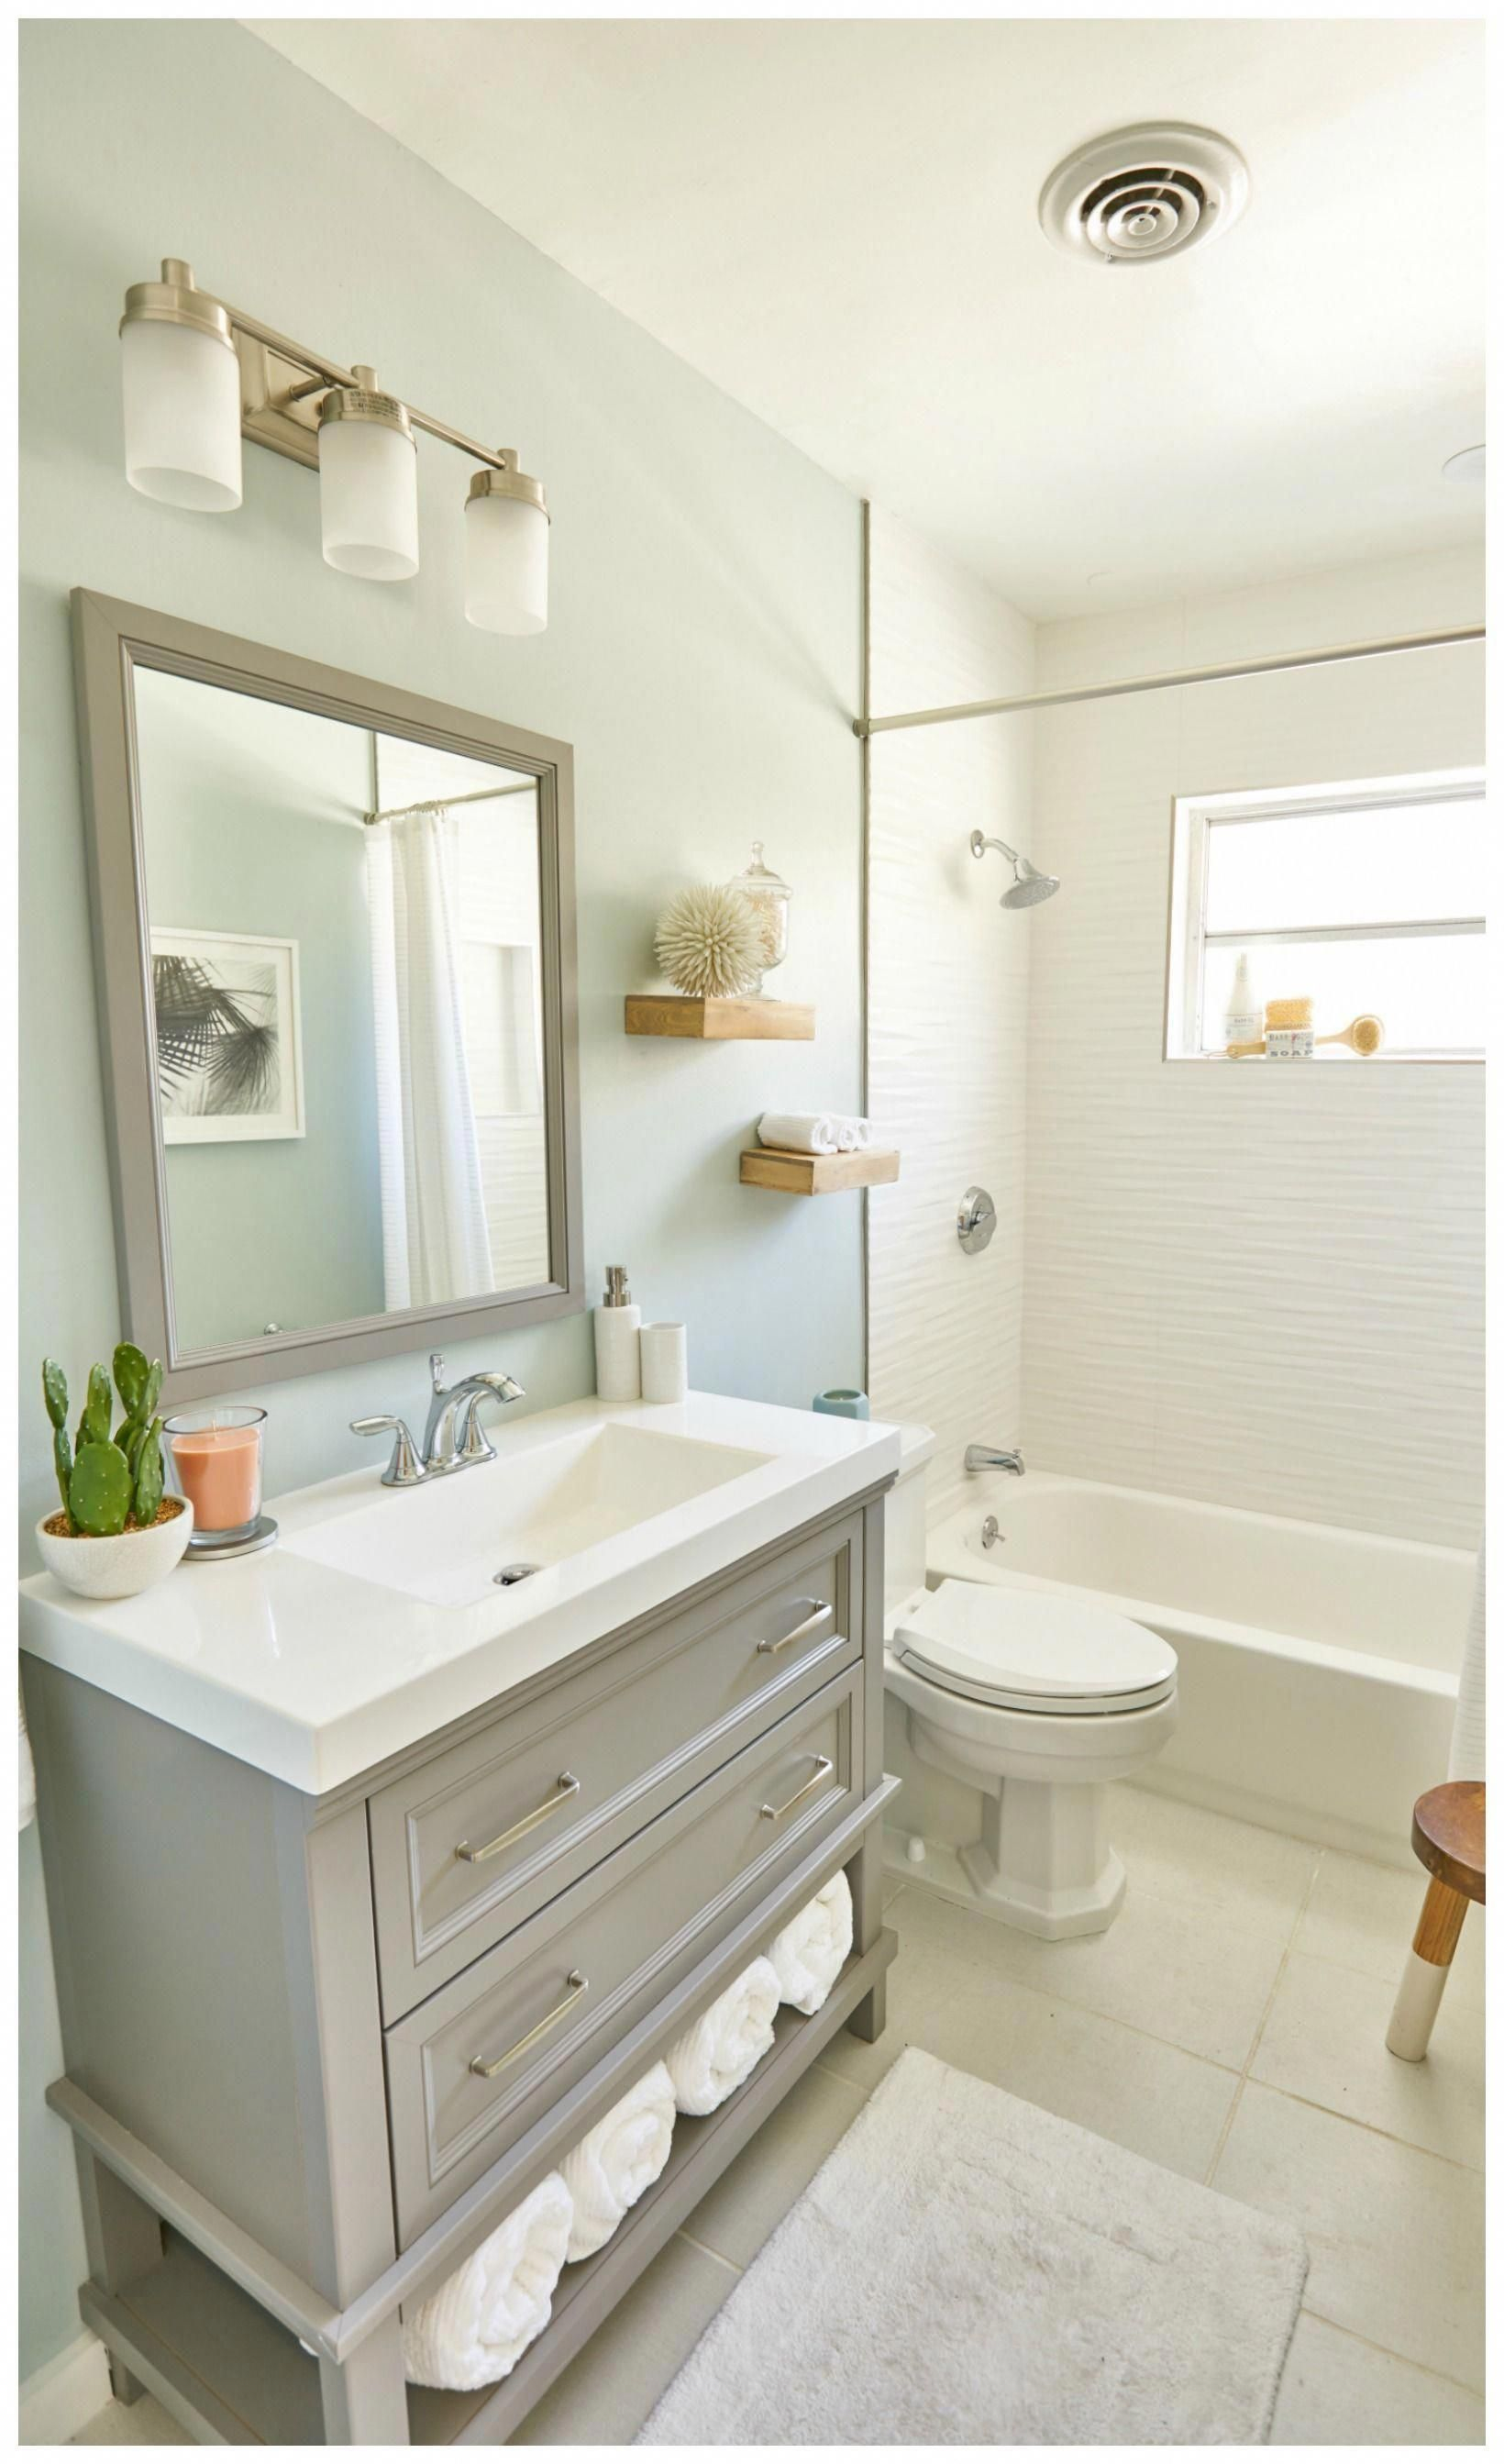 8 Ways to Make a Small Bathroom Look Bigger